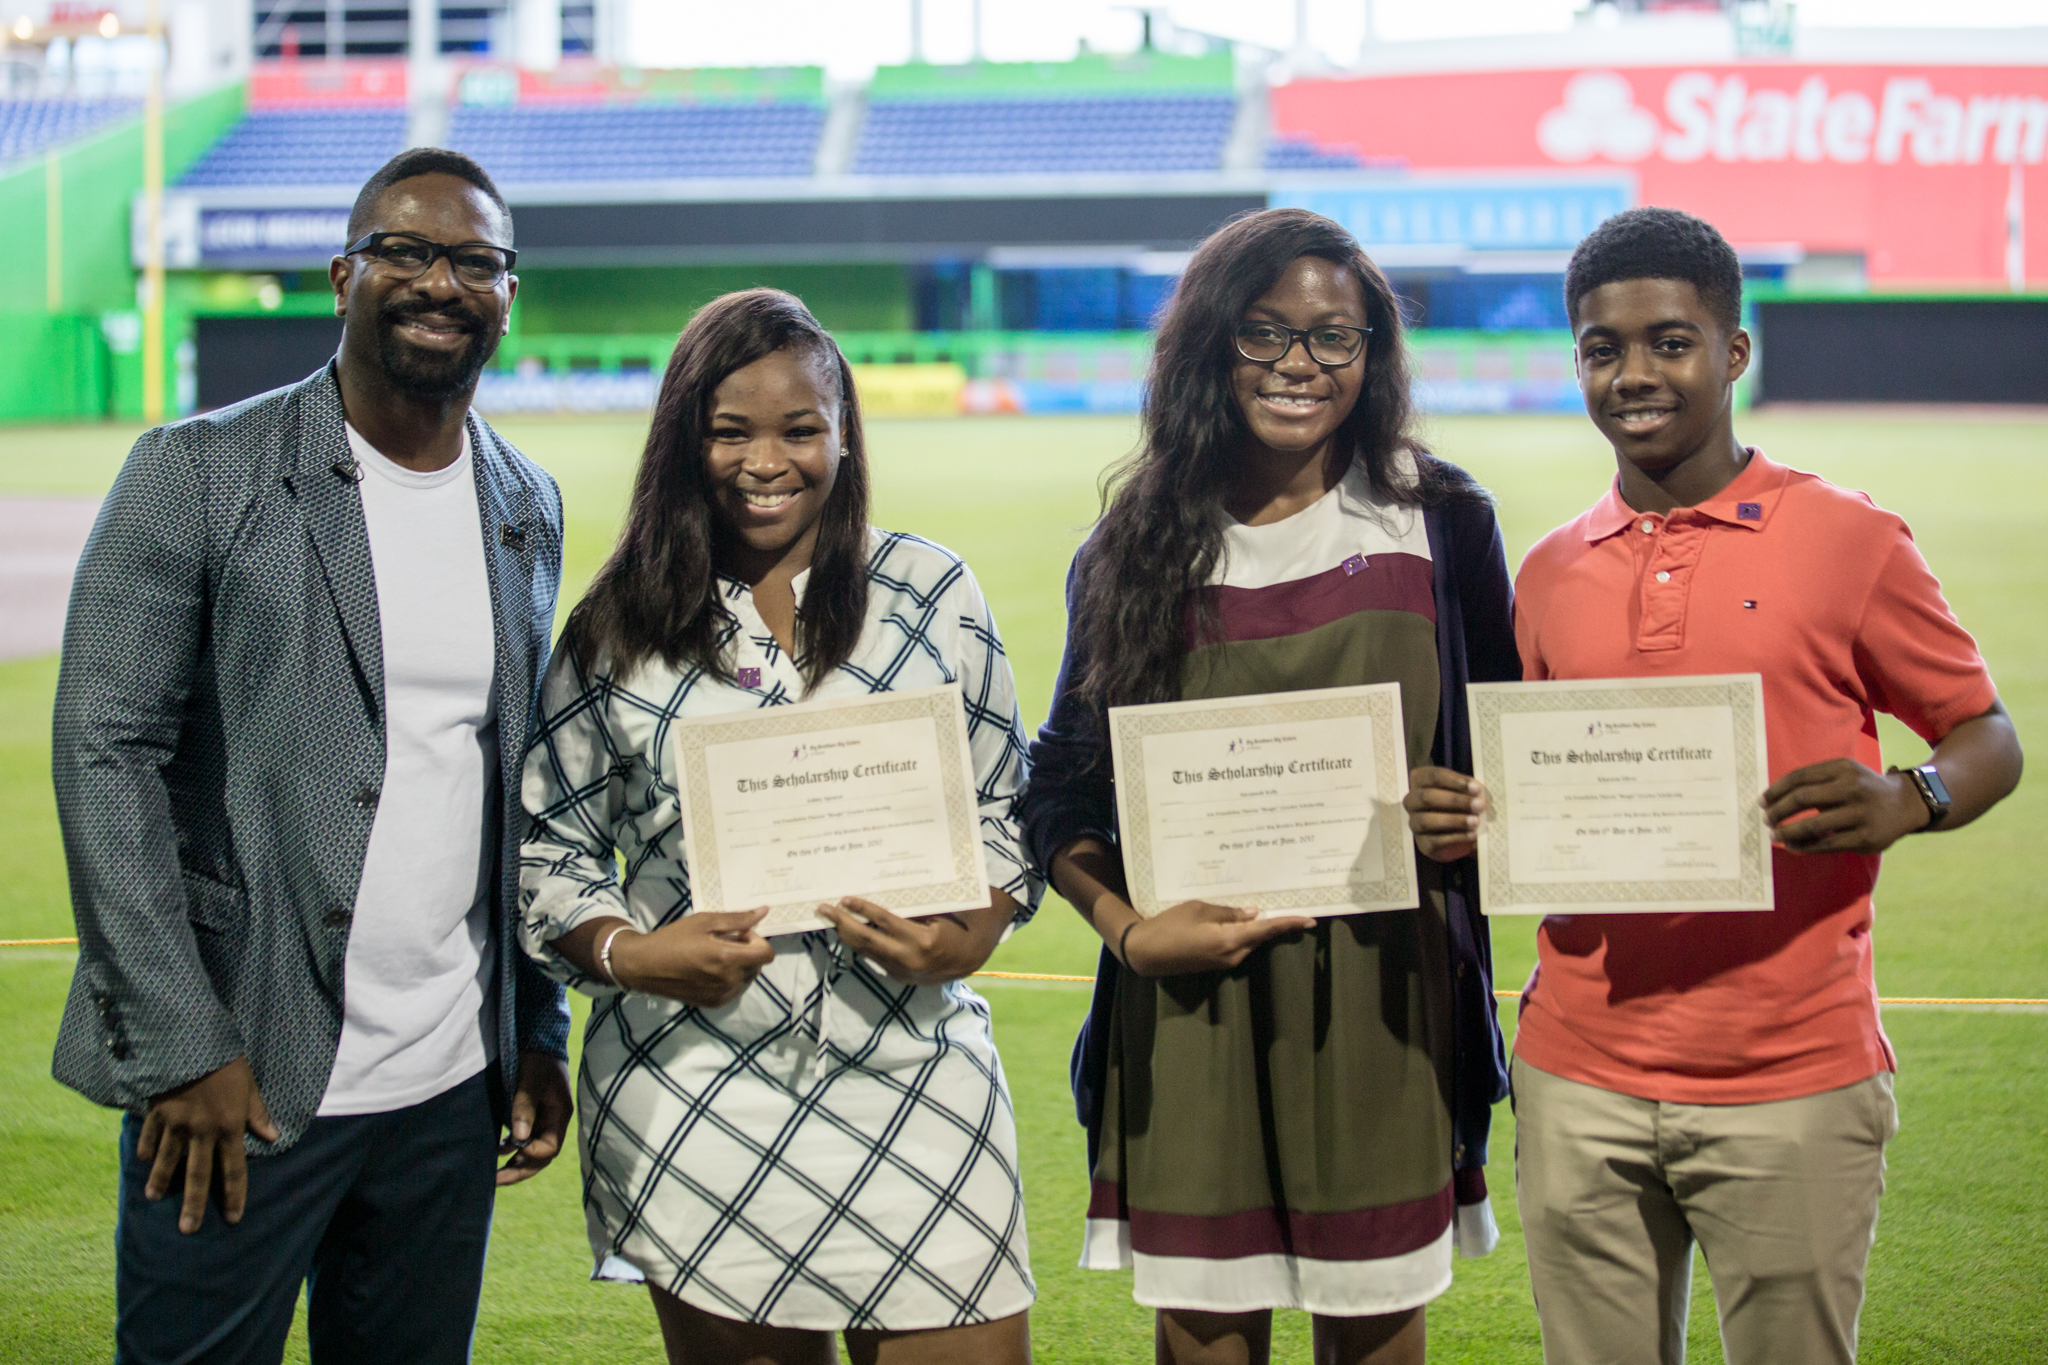 "Congratulations to Savannah Kelly, Khareem Oliver, and Ashley Spencer on being the first Theresa ""Boogie"" Grocher Scholarship recipients, awarded in honor of Irie's late mother. These high school seniors demonstrated an exemplary commitment to community service in the Miami-Dade area with a desire to continue in philanthropy outreach opportunities throughout college. IRiE presented each student, from Big Brothers Big Sisters Miami a $5,000 scholarship to be used towards their college expenses. We commend each student for their outstanding community service achievements and commitment to continuing education!"